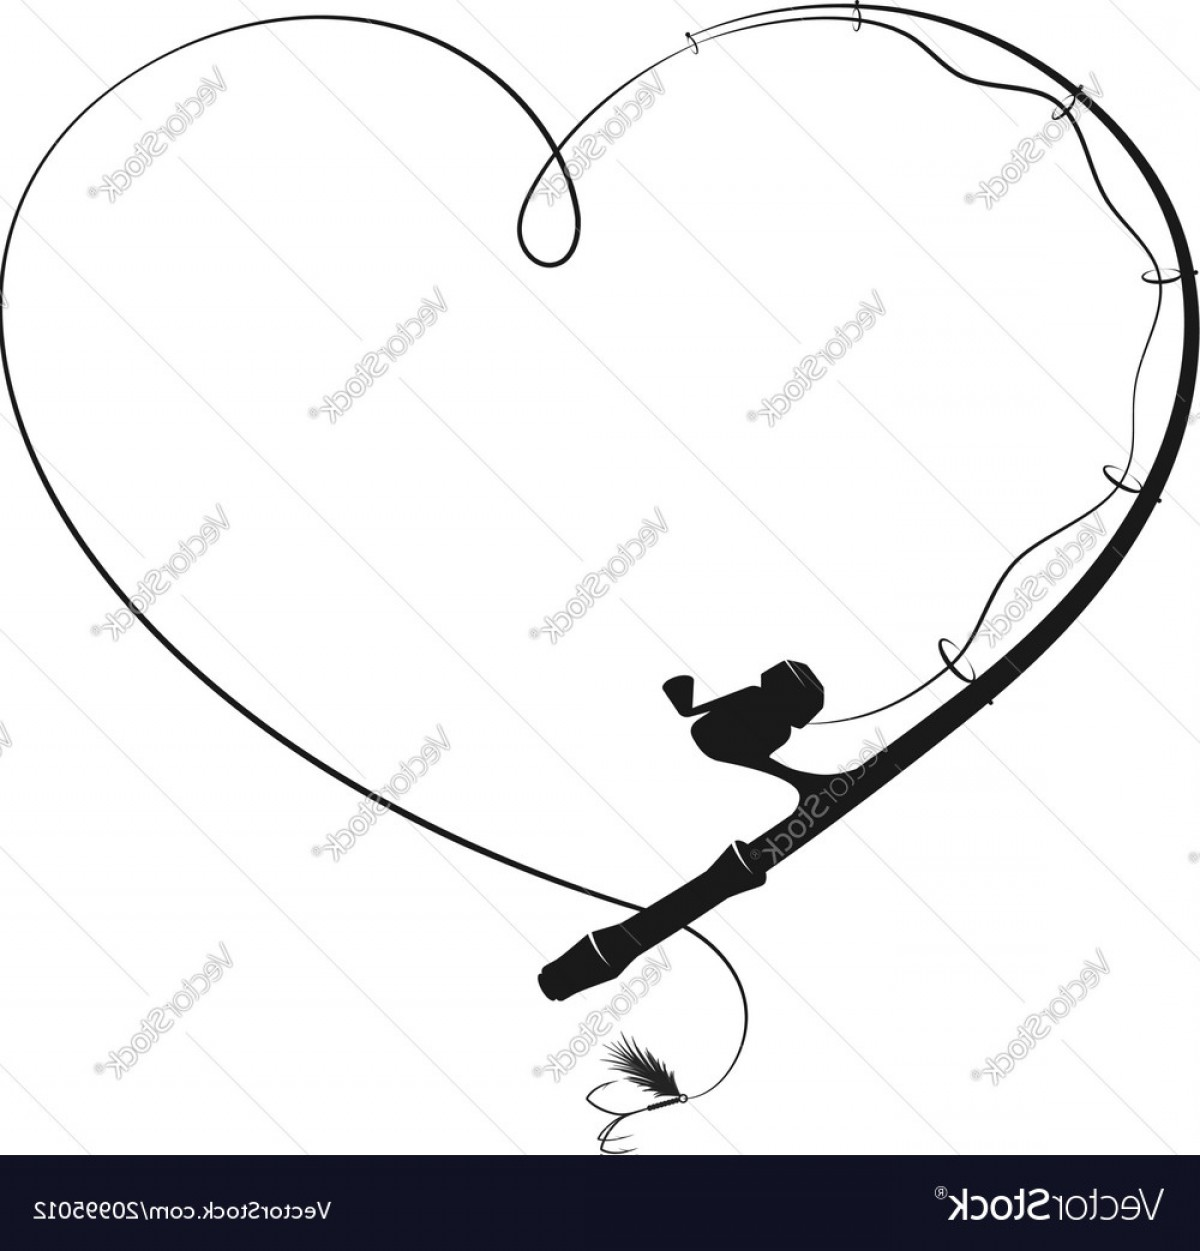 Fishing Pole Silhouette Vector: Fishing Rod In The Form Of Heart Vector